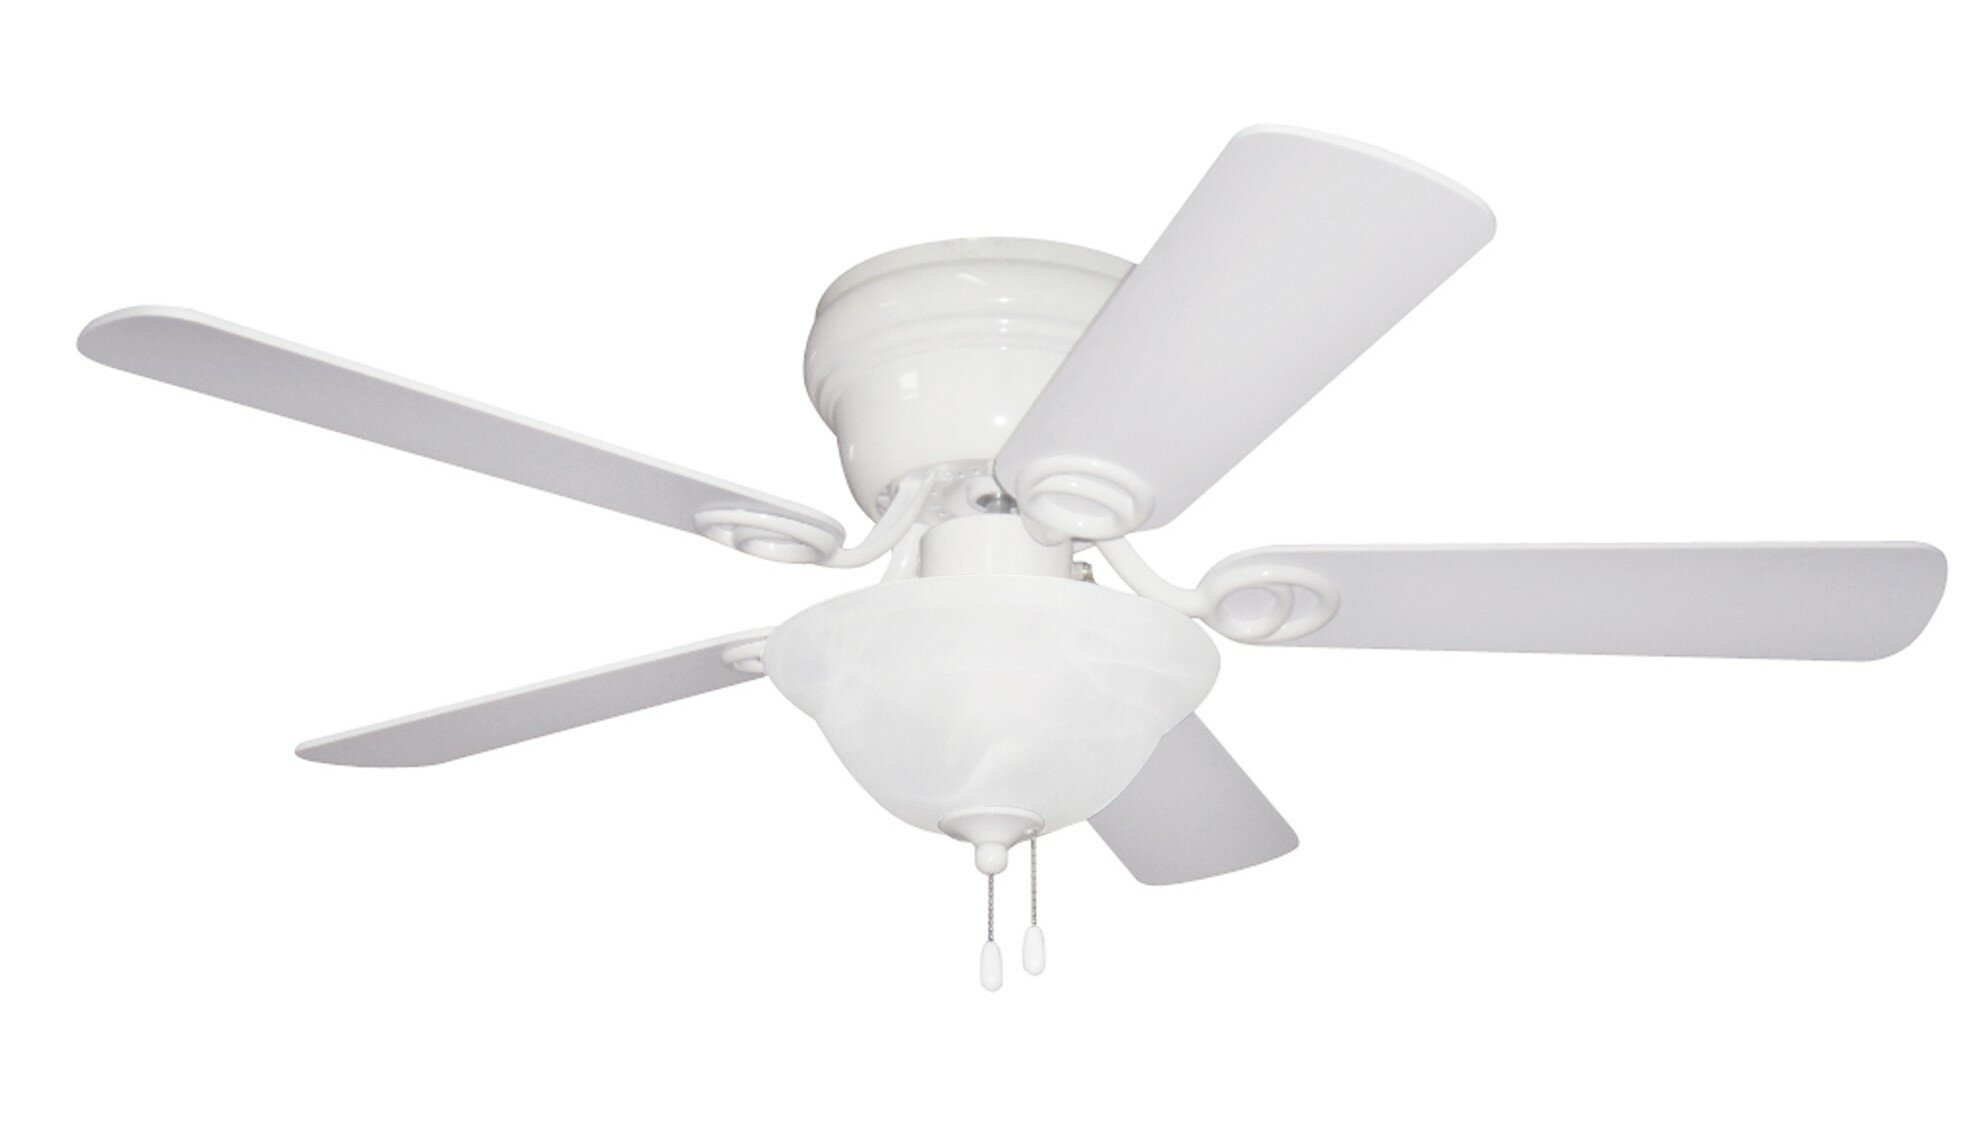 Ceiling Fans Hunter Conroy Conroy 42 5 Blade Hugger Flush Mount Indoor Ceiling Fan Blades Home Furniture Diy Tallergrafico Com Uy